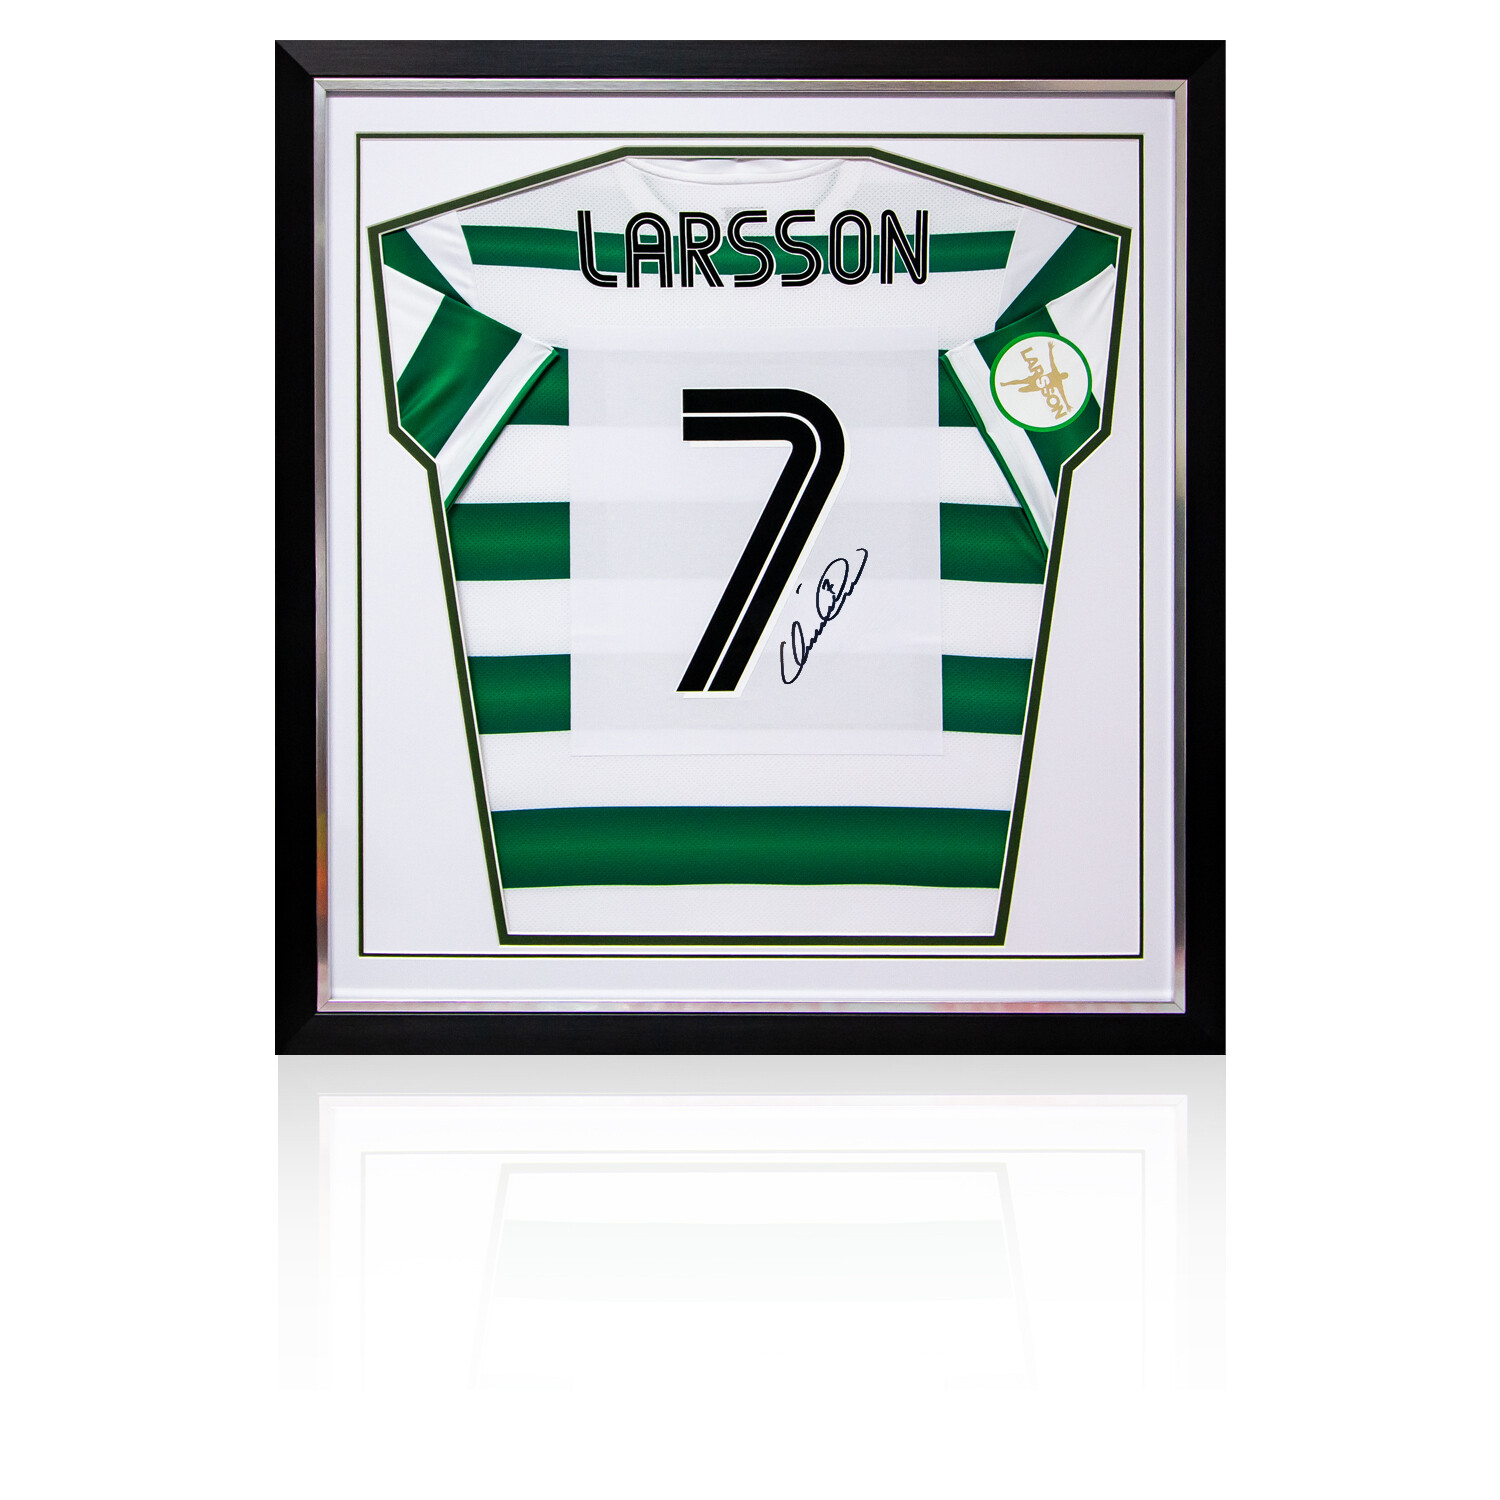 Official Henrik Larsson Collection at PM presents